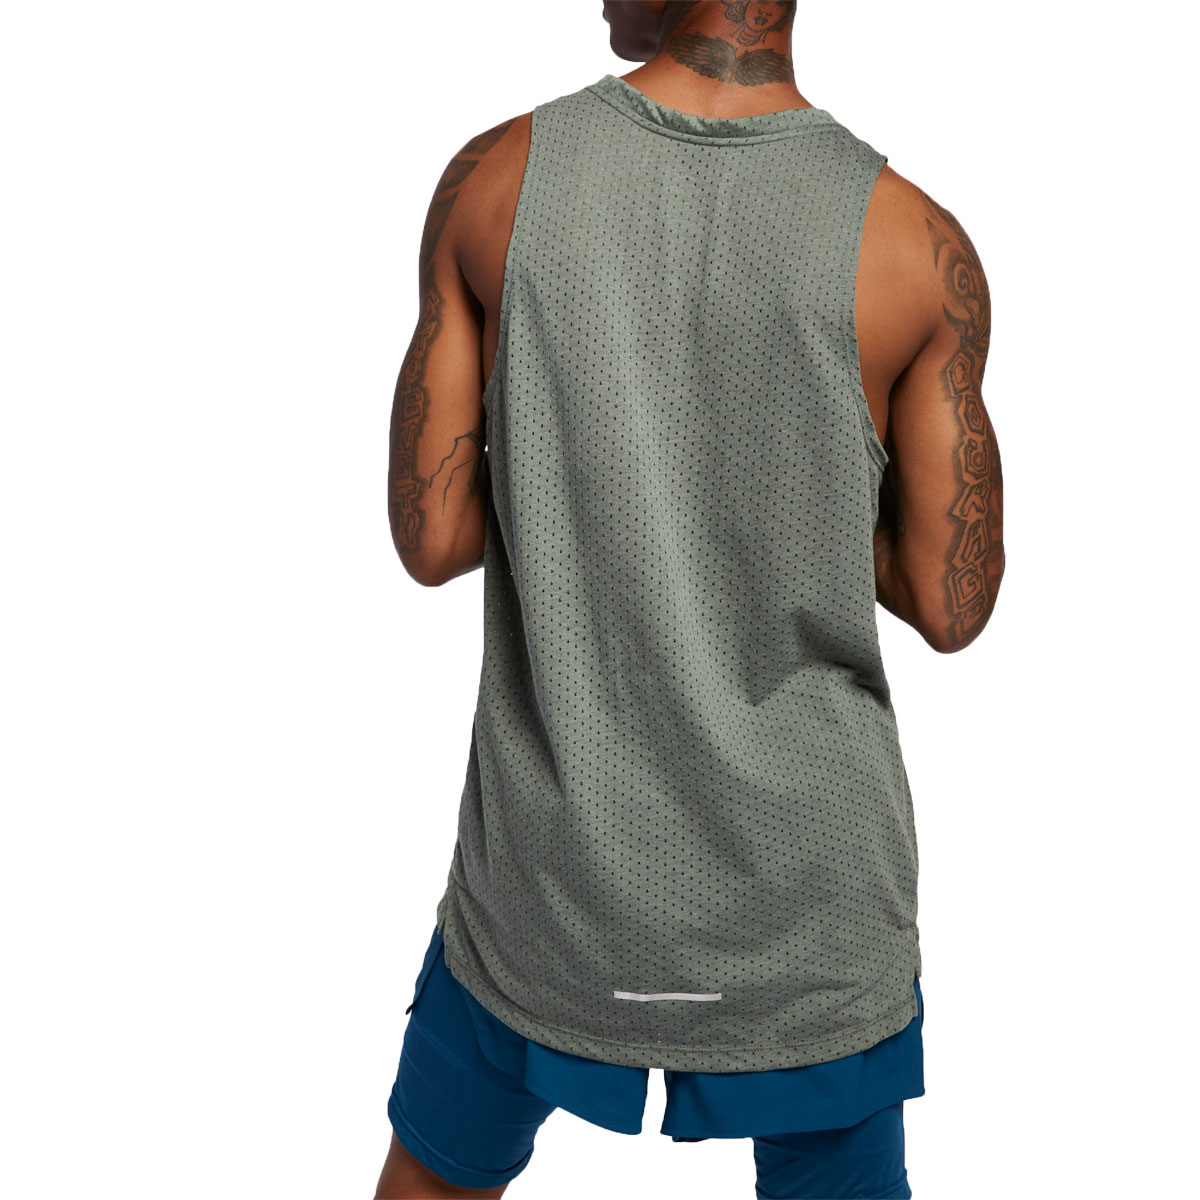 Men's Nike Breathe Rise 365 Tank  - Color: Juniper Fog/Heather - Size: XL, Juniper Fog/Heather, large, image 2